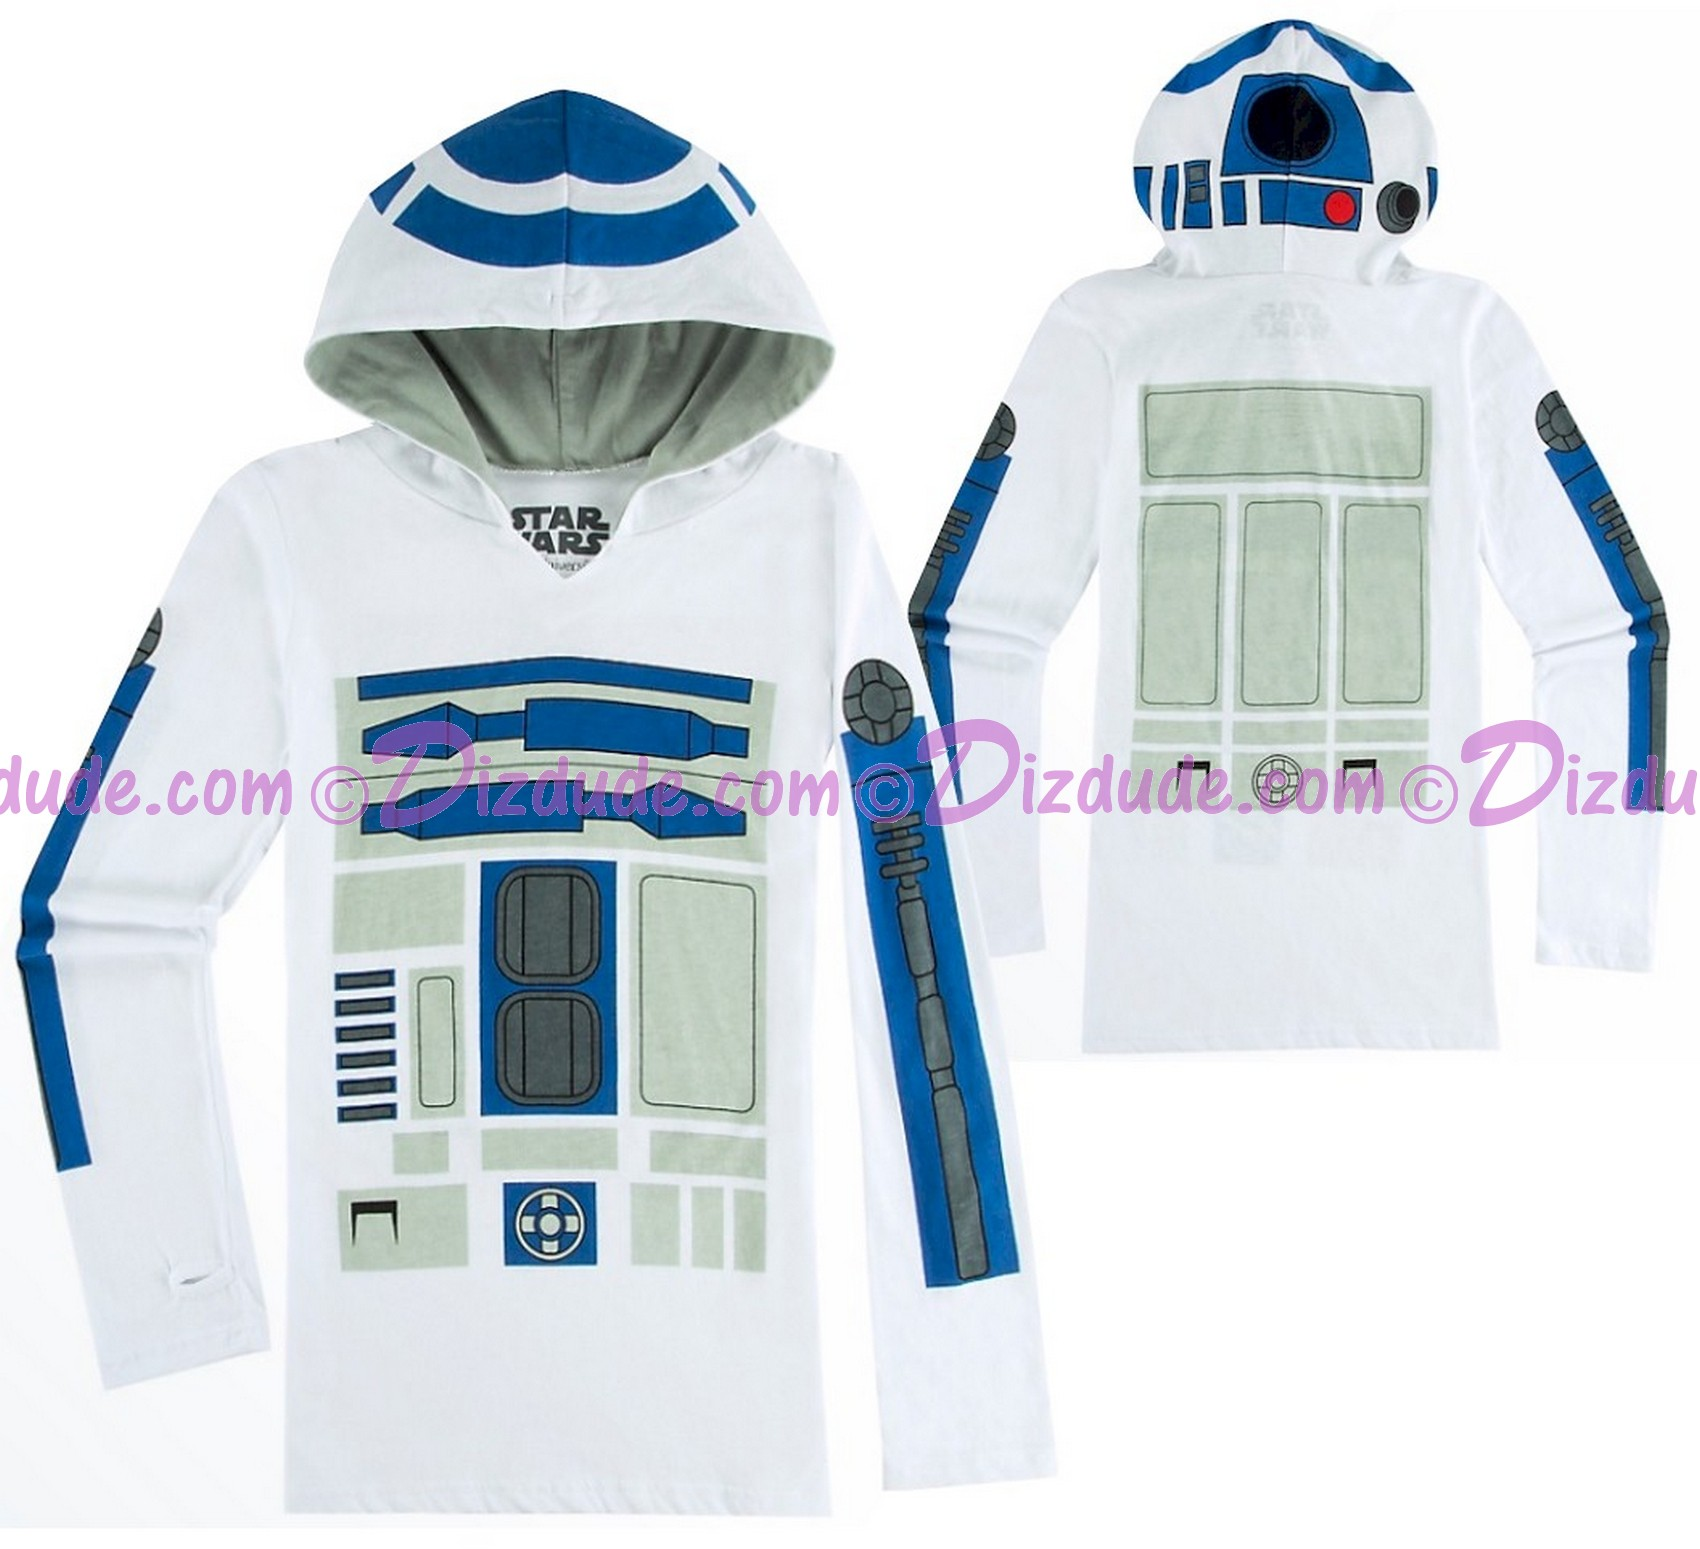 R2-D2 Long Sleeved Ladies Hoodie - Disney's Star Wars © Dizdude.com